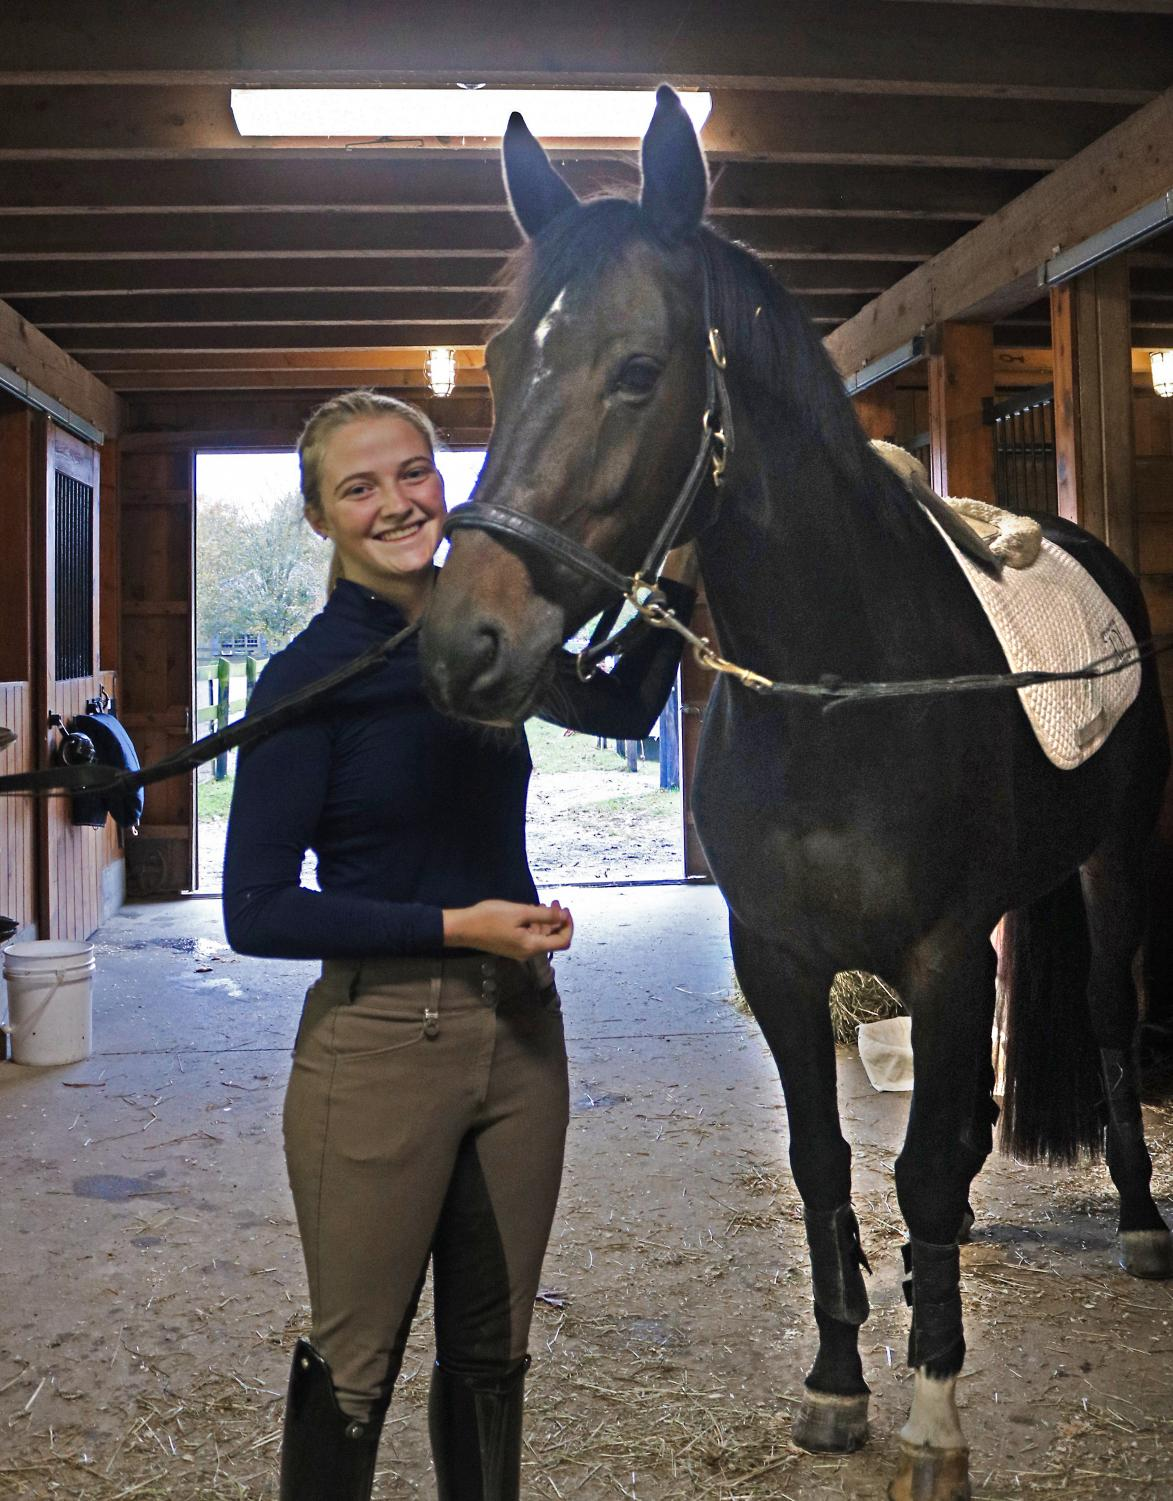 Junior Bella Thorpe stands alongside her horse and close companion, Bella Ymas, inside the stables of Woodbe Farm.